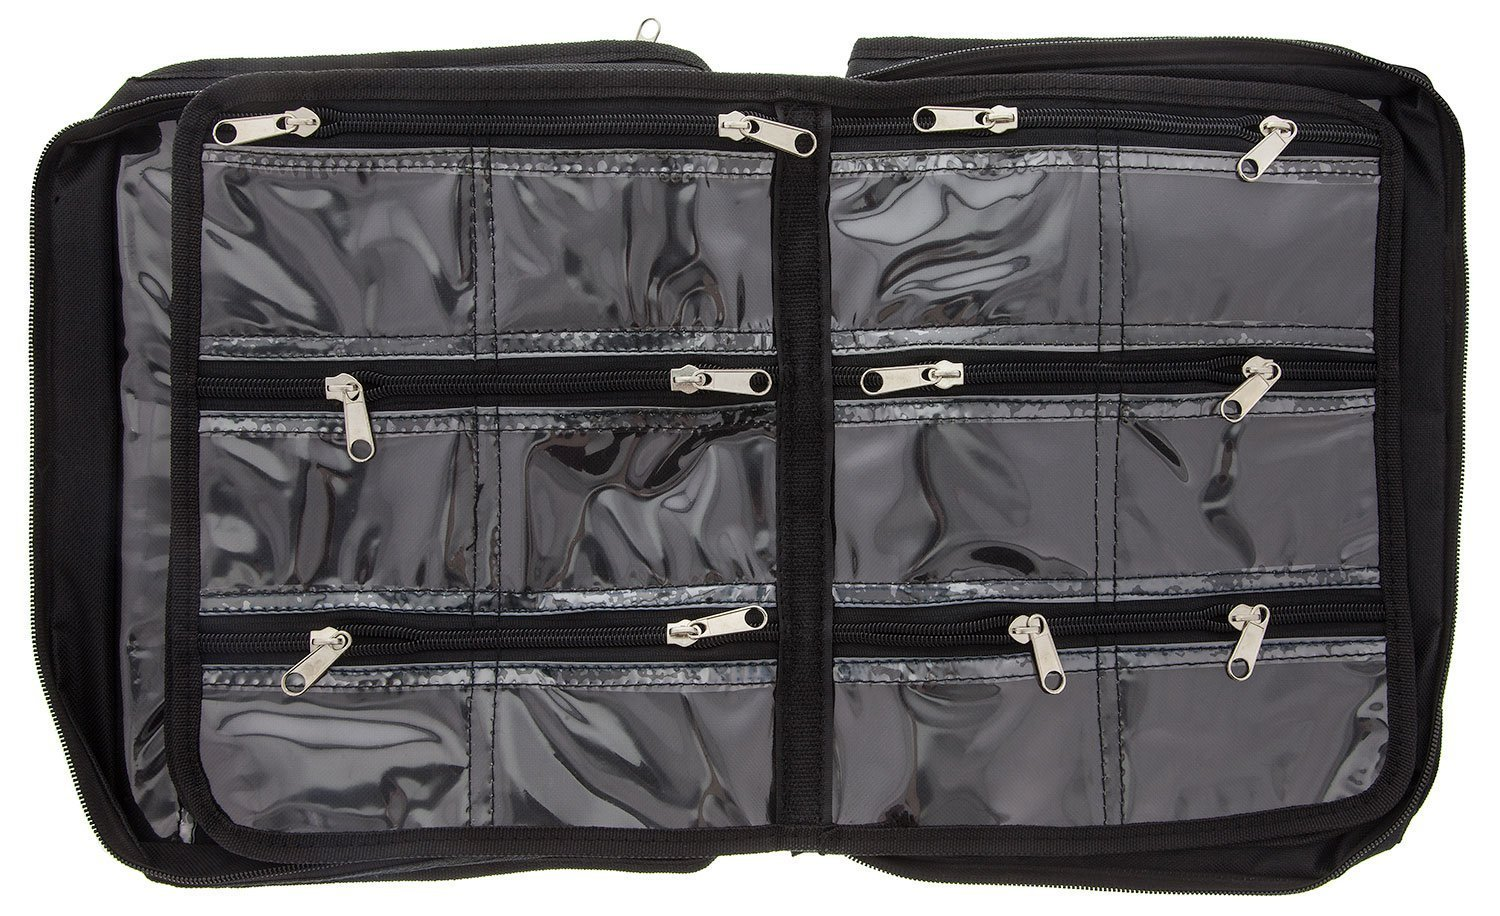 BeadSmith Black Crafter's Tote Bag, with 2 Removable Pockets and 23 Compartments 12x10 inch UK Shop e